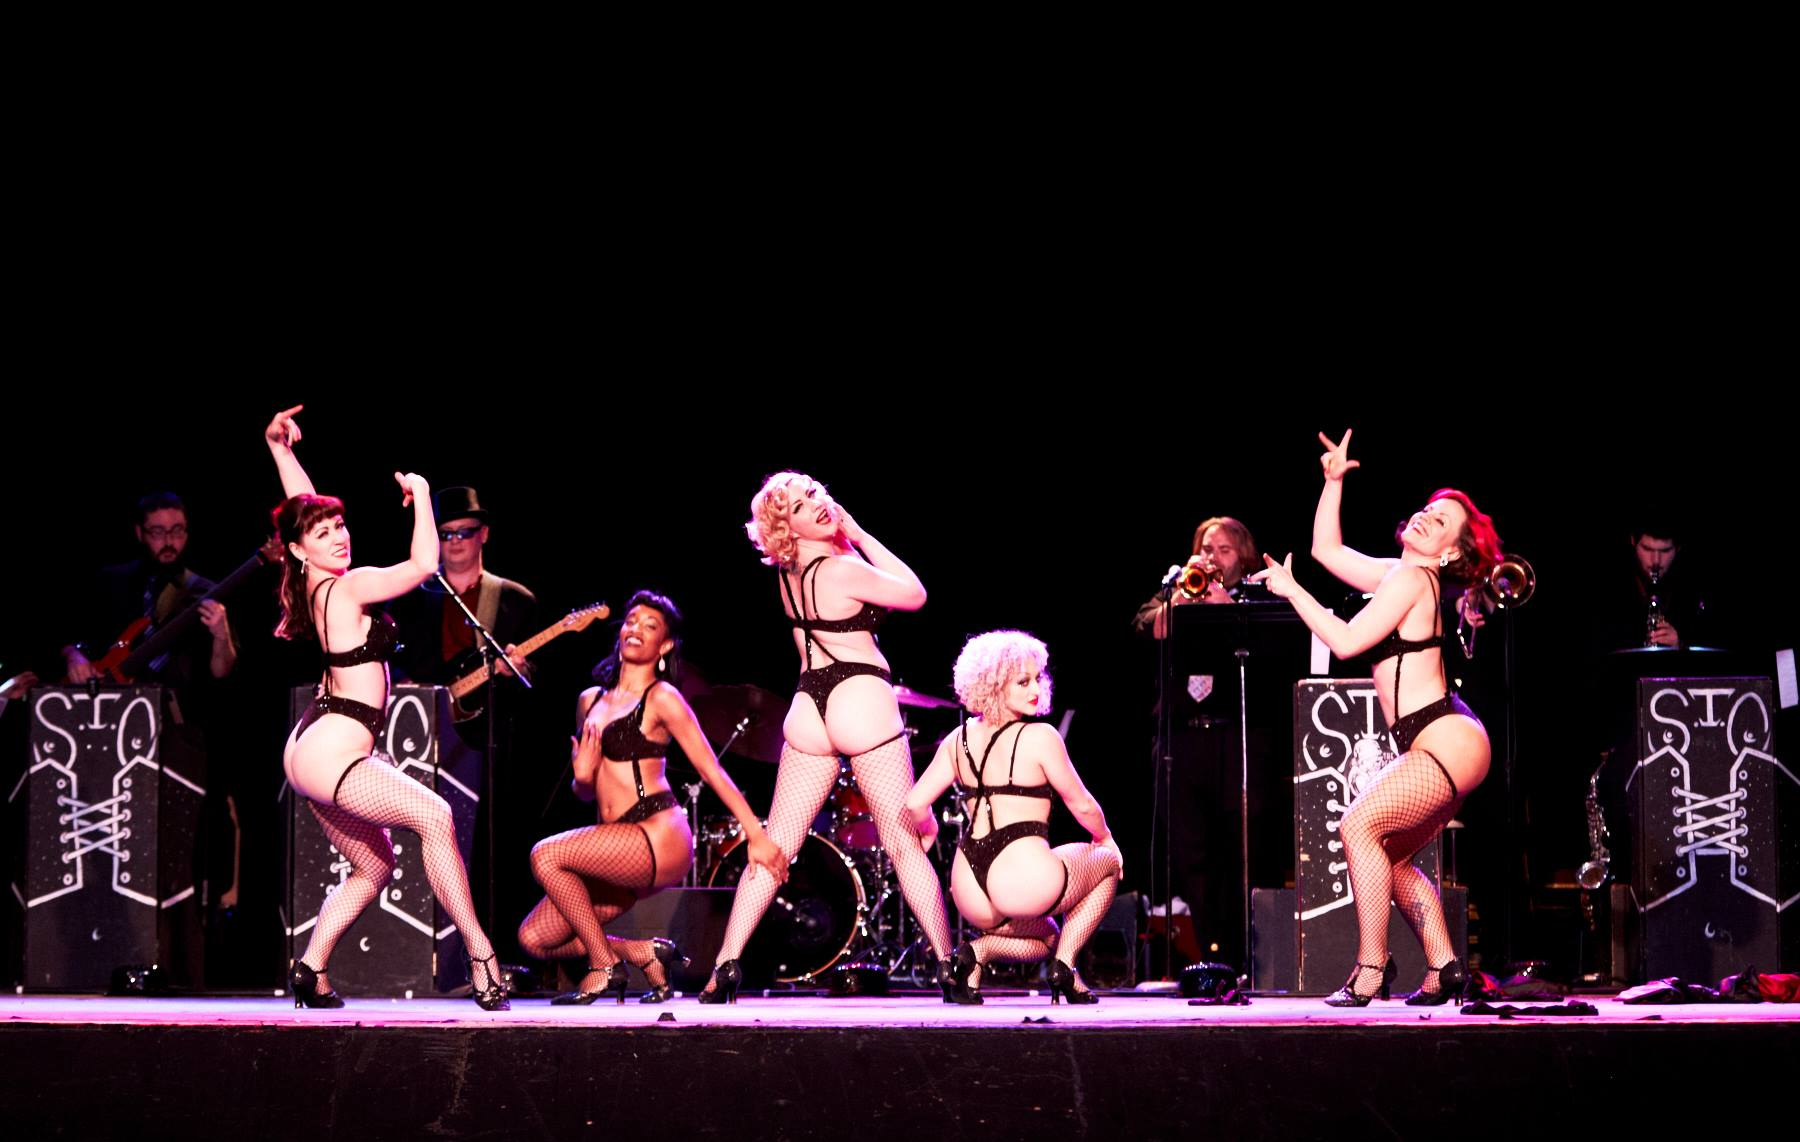 Peek-A-Boo Revue with band. ChrisKPhotography